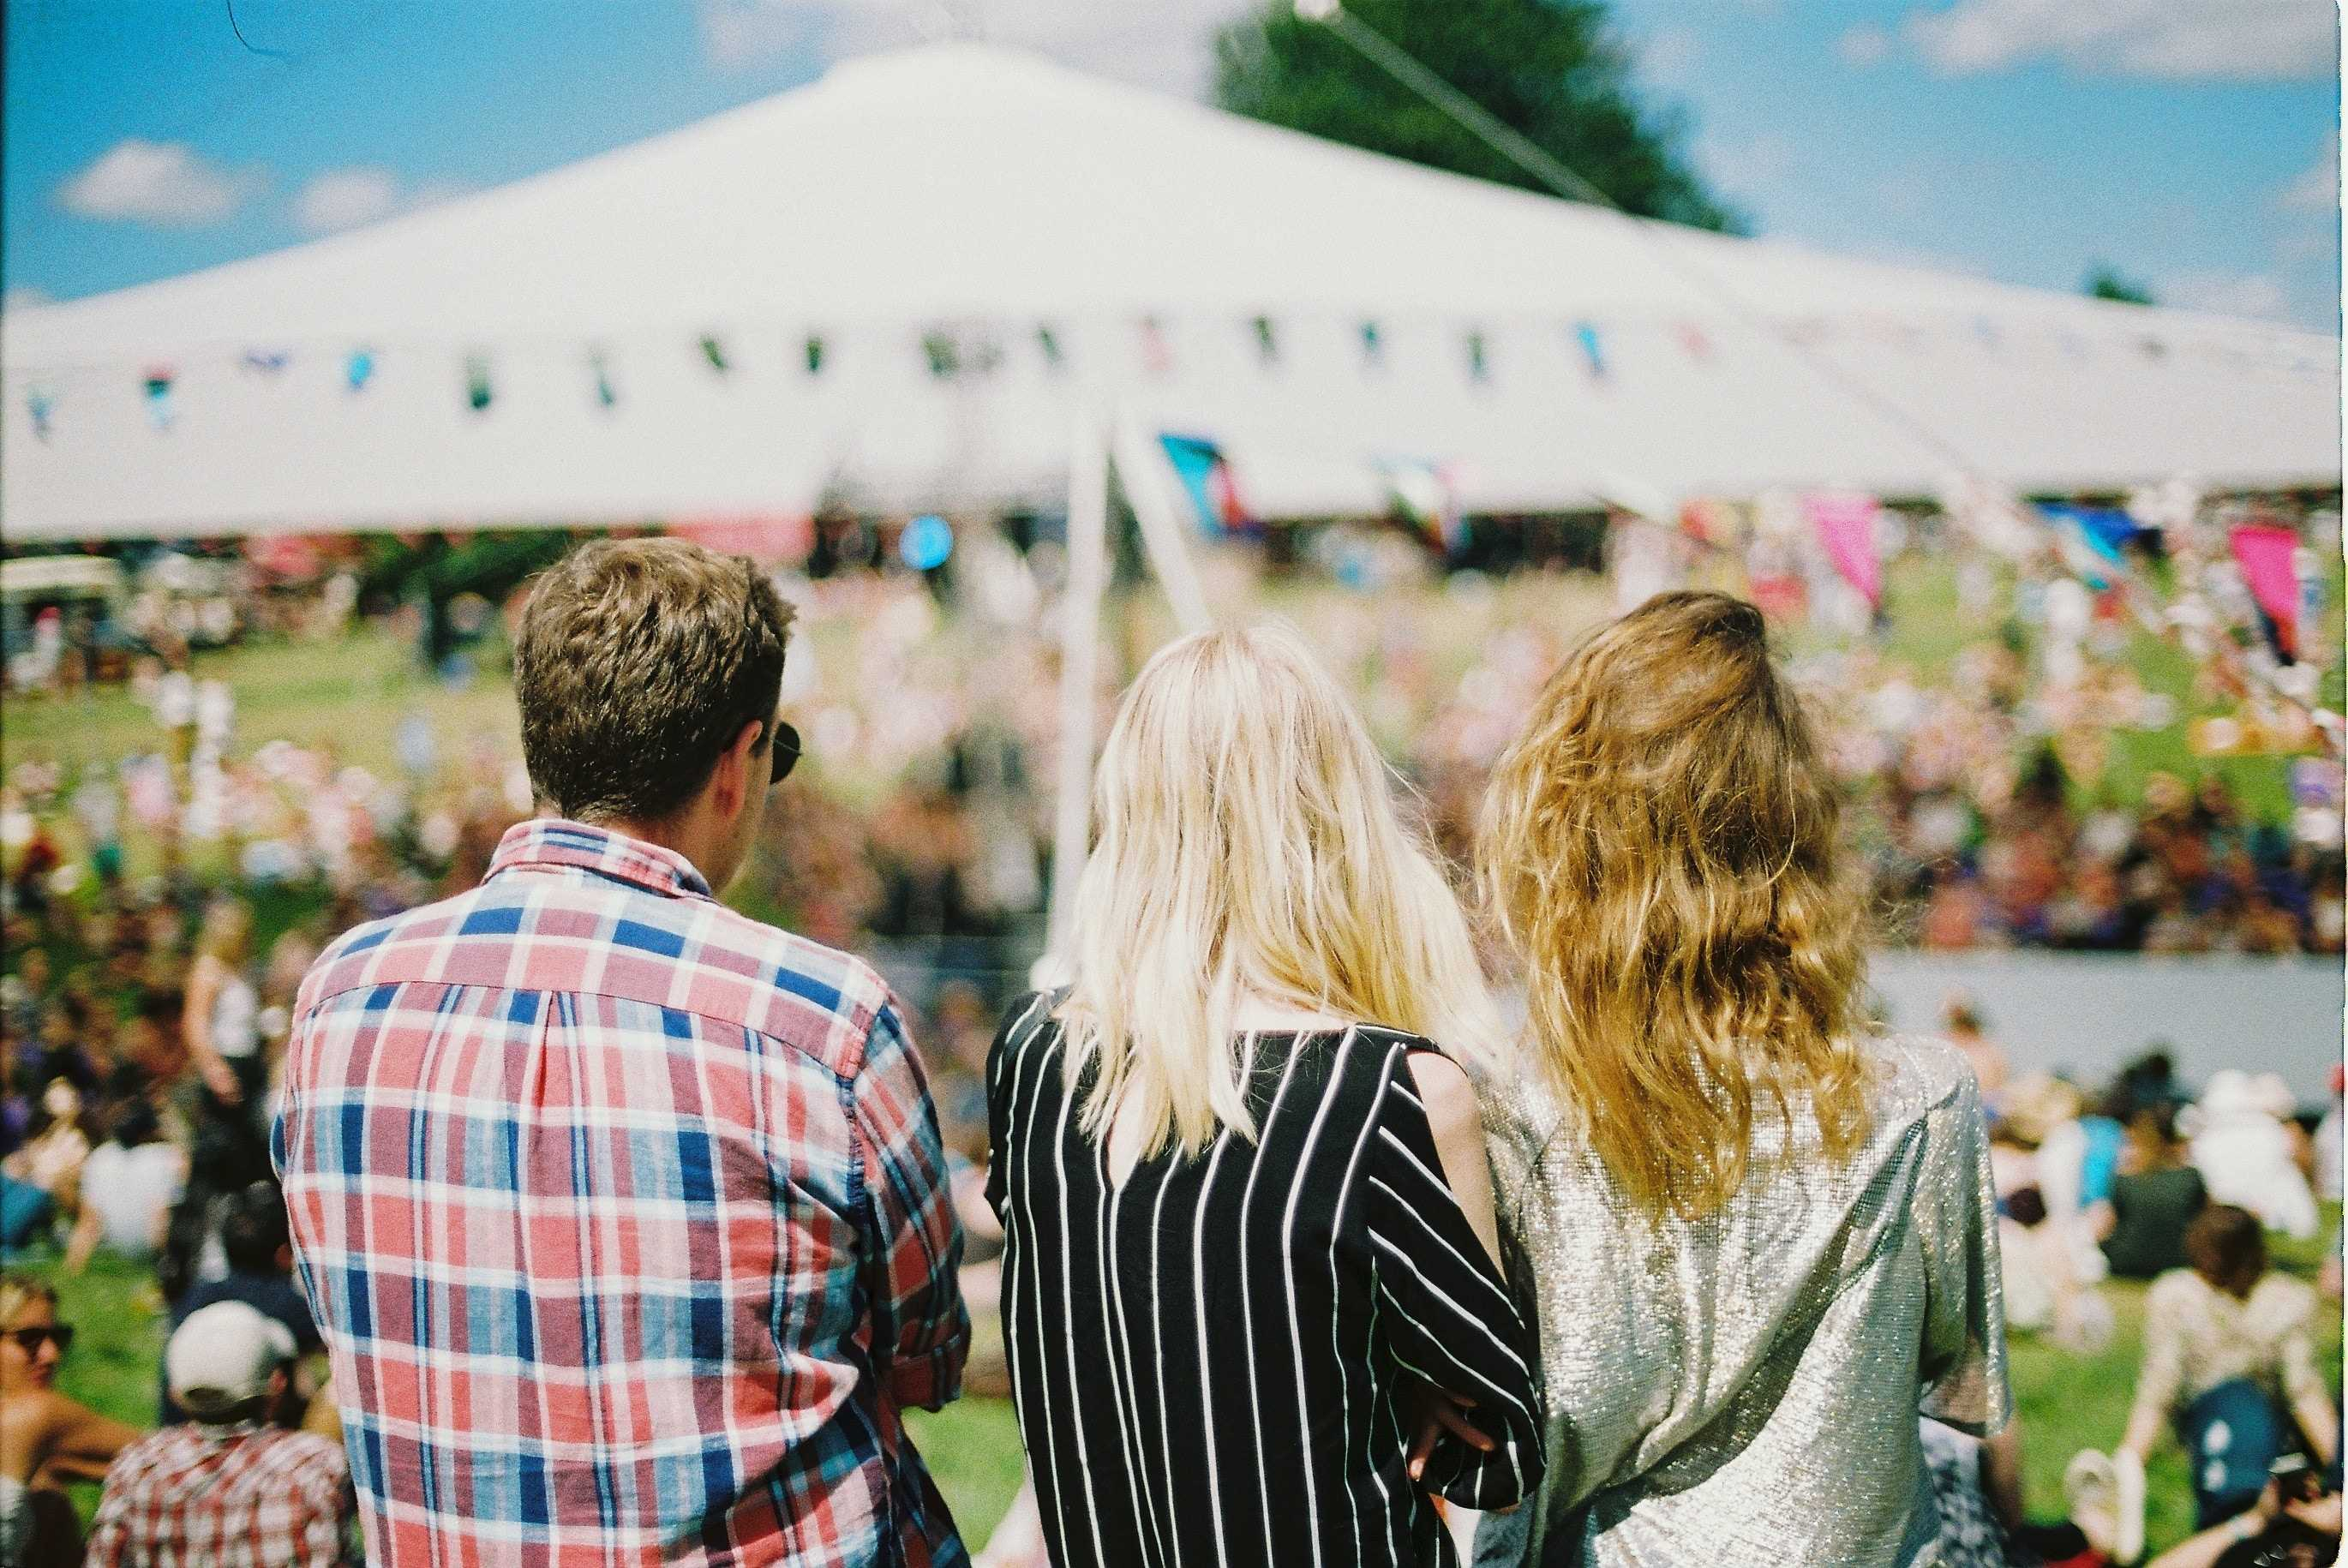 So many fun things to do in Surrey this summer!